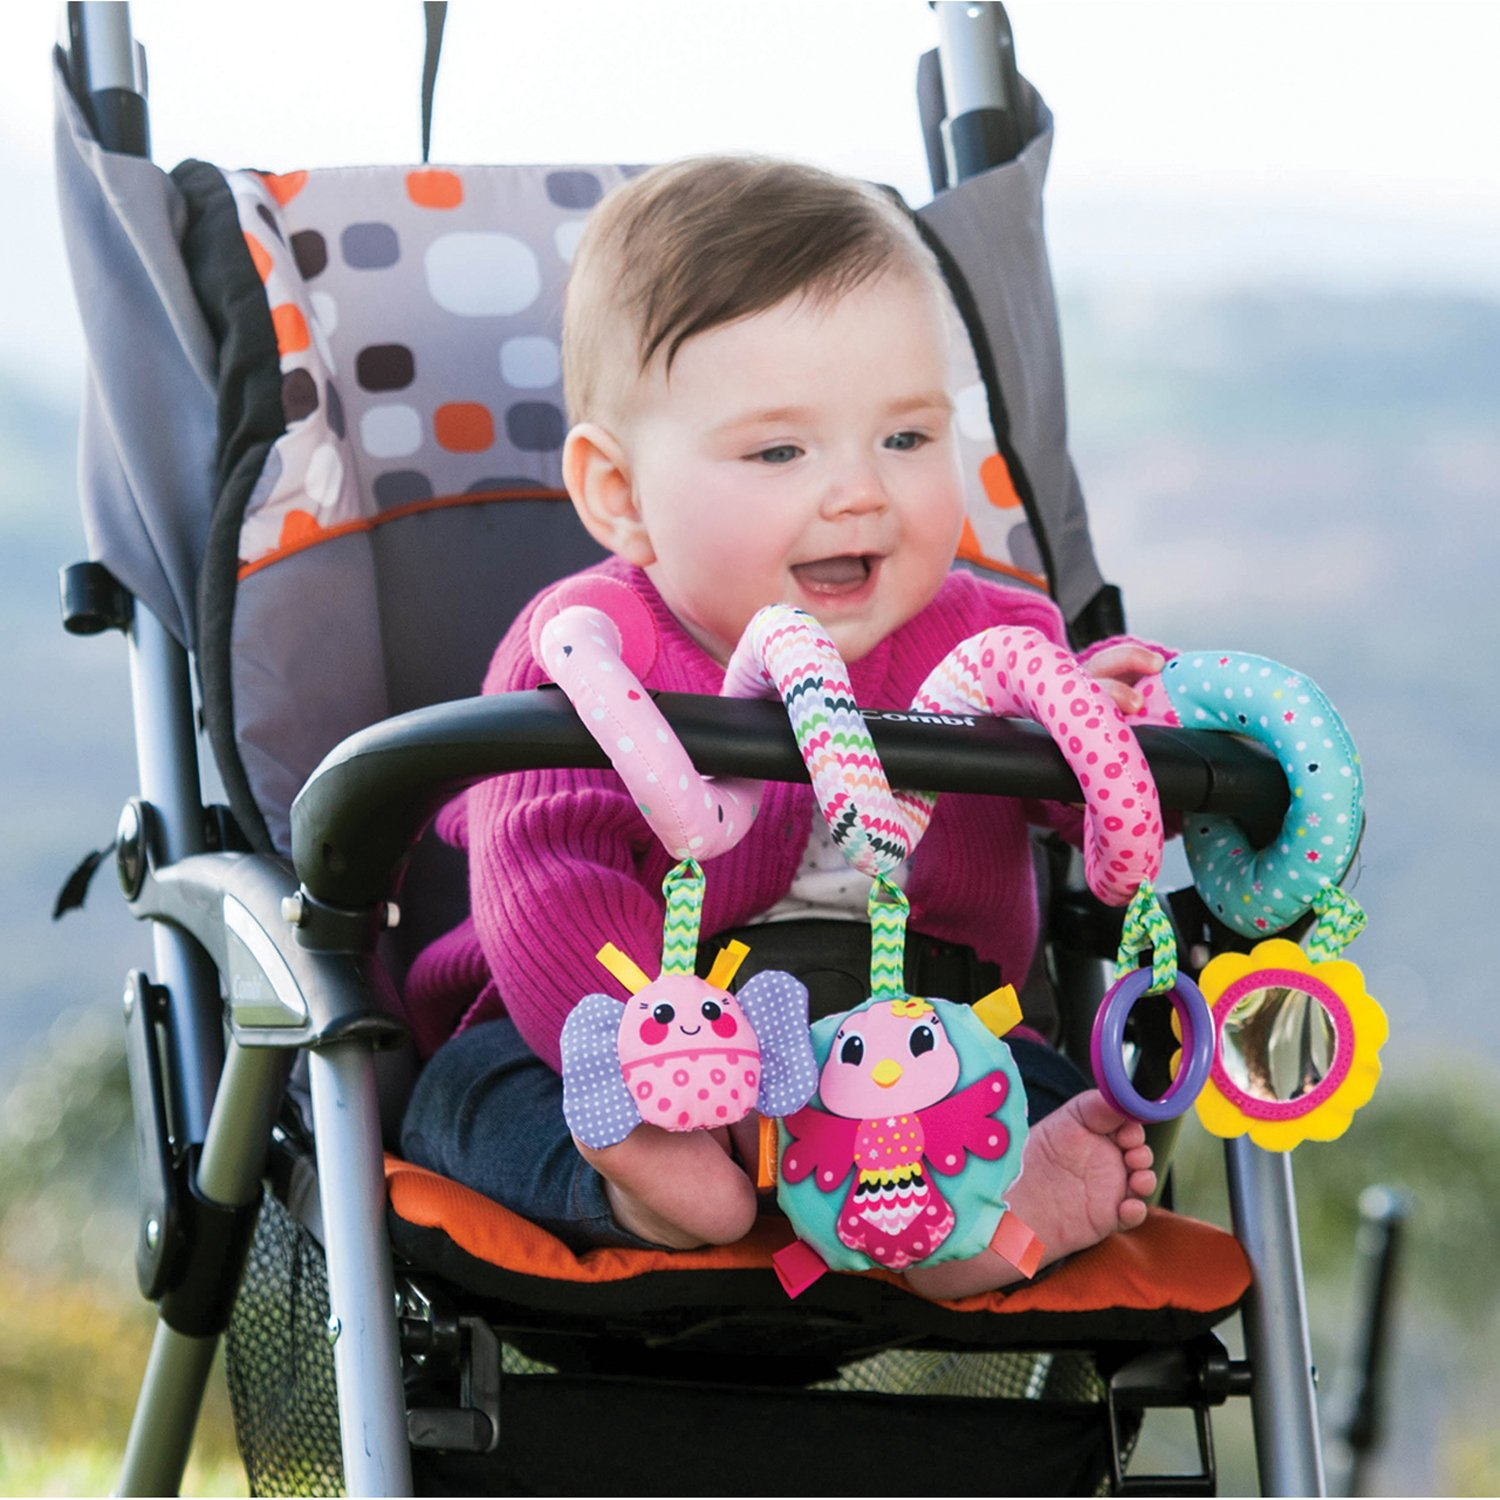 infantino spiral activity toy pink hanging baby toys car seat stroller toys ebay. Black Bedroom Furniture Sets. Home Design Ideas